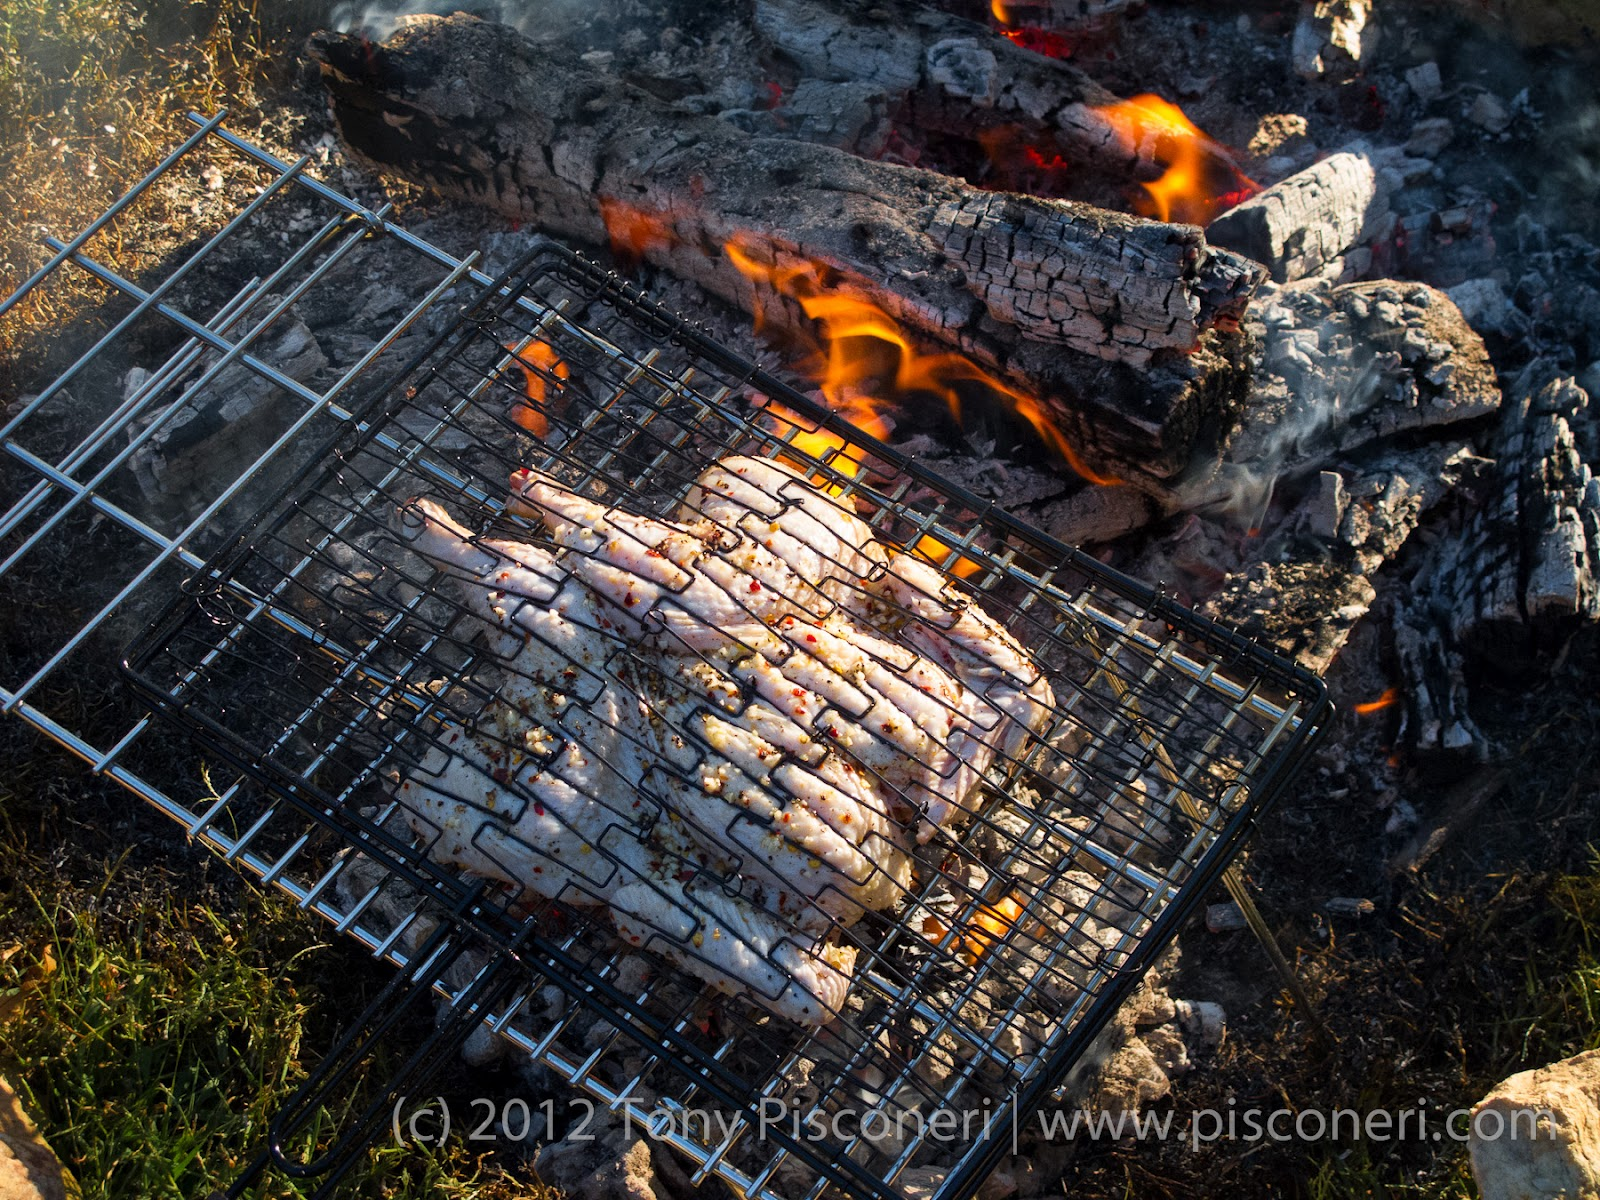 Chef Tony Pisconeri Pasture Raised Chicken And Open Hardwood Fire Pit Cooking